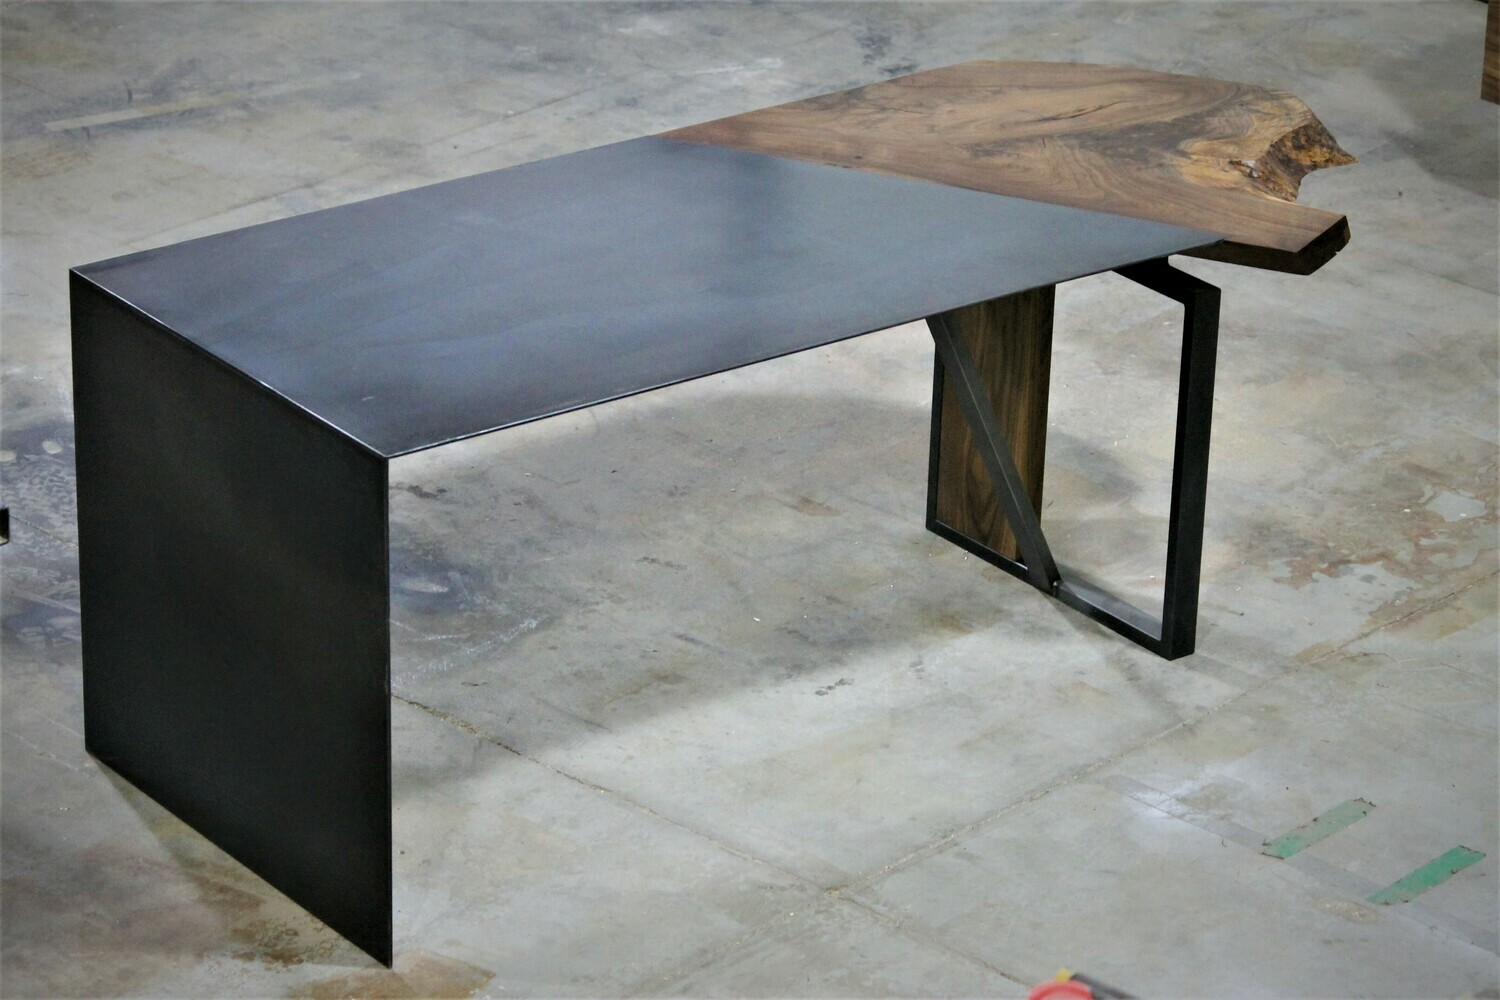 T1F CUSTOM LIVE EDGE DESK WOOD & STEEL 6'6